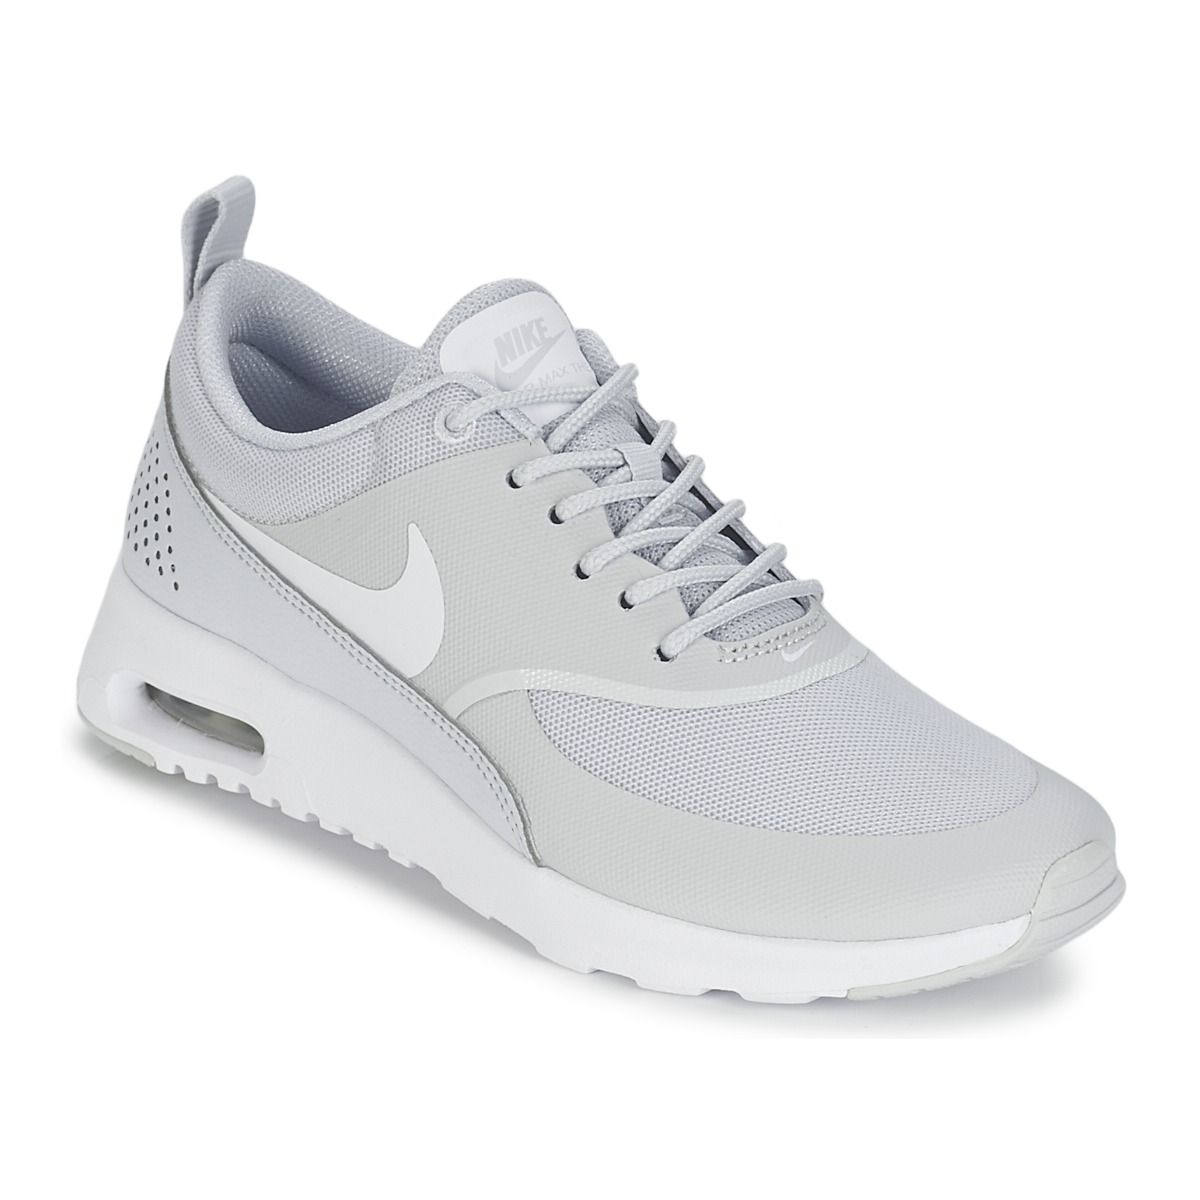 wholesale dealer 34da4 50185 Baskets basses Nike AIR MAX THEA W Gris prix promo Baskets Femme Spartoo  119.00 €